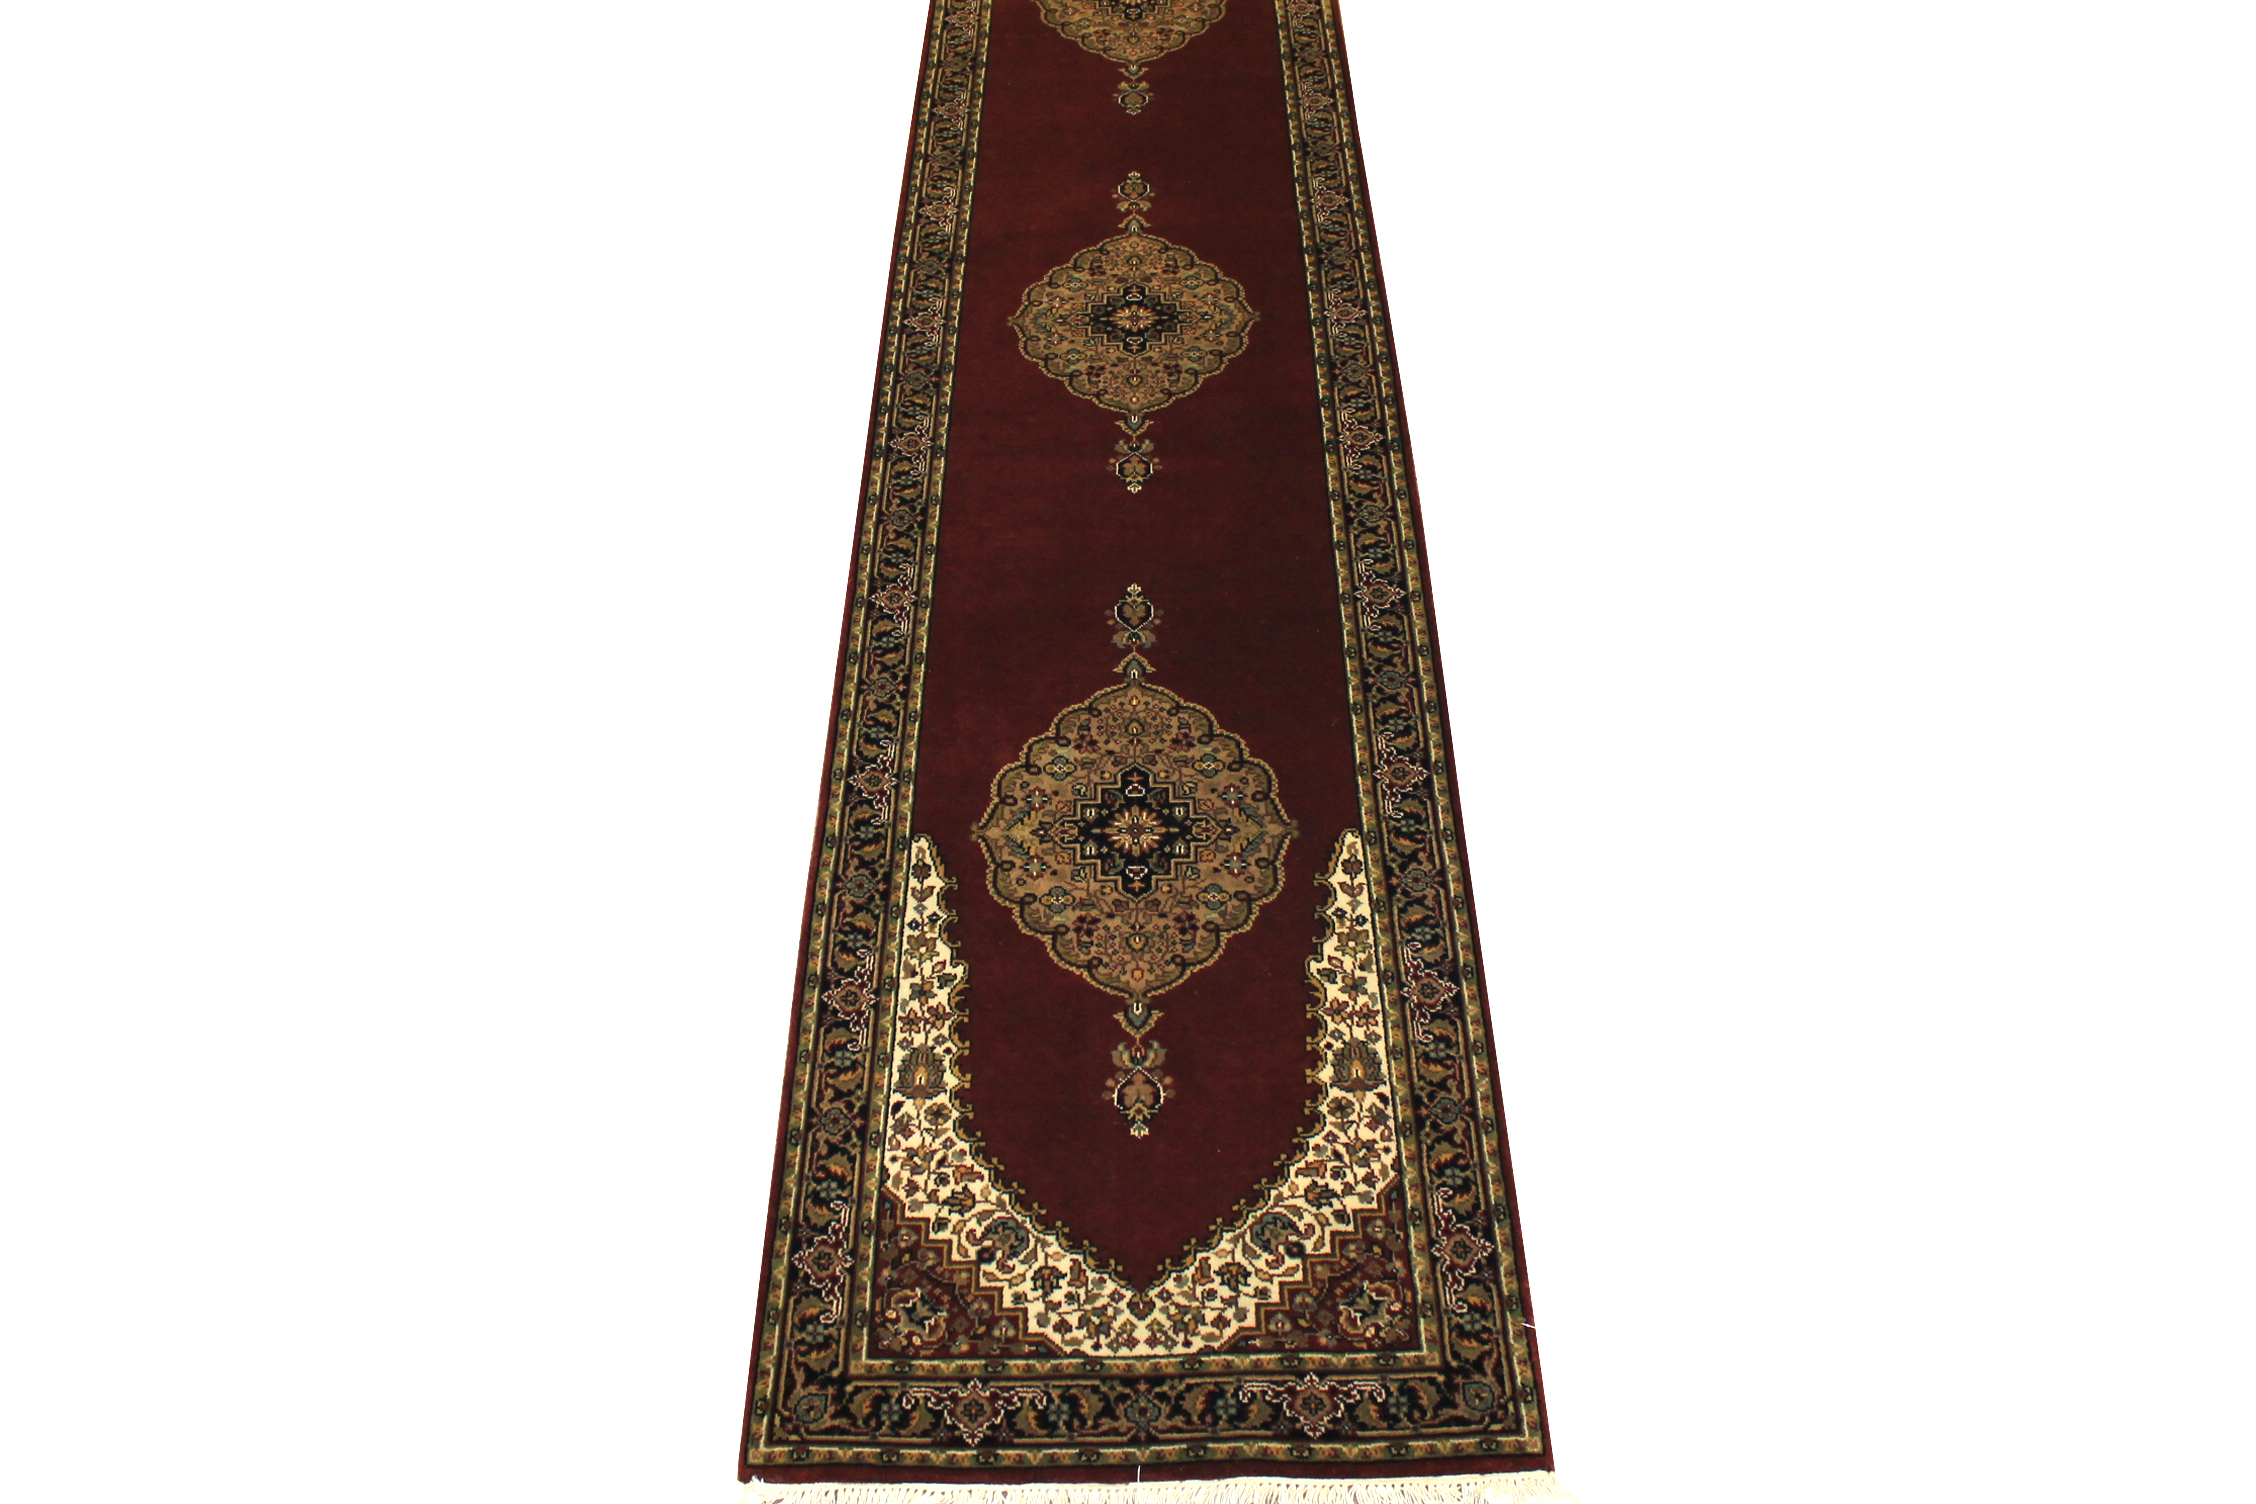 12 Runner Jaipur Hand Knotted Wool Area Rug - MR5762